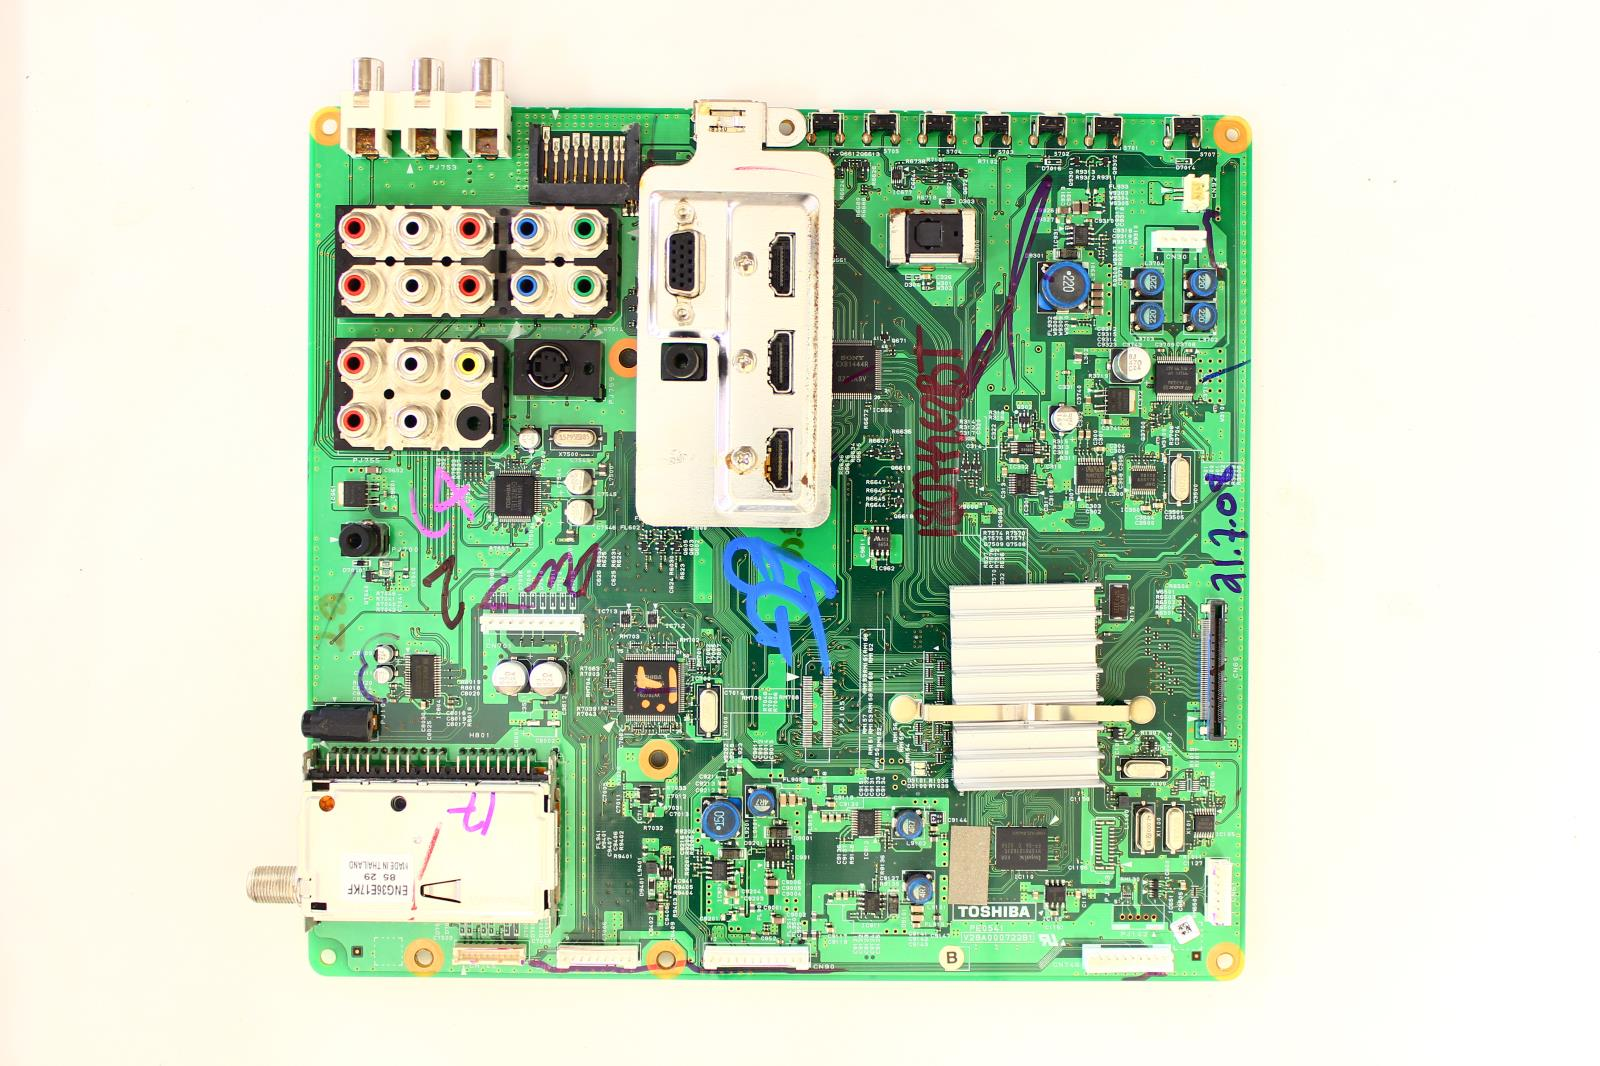 Toshiba 42xv540u Power Supply Schematic Diagram Great Installation Connector Wiring Main Board 75011534 Tvparts At Tvpartsinstock Rh Com